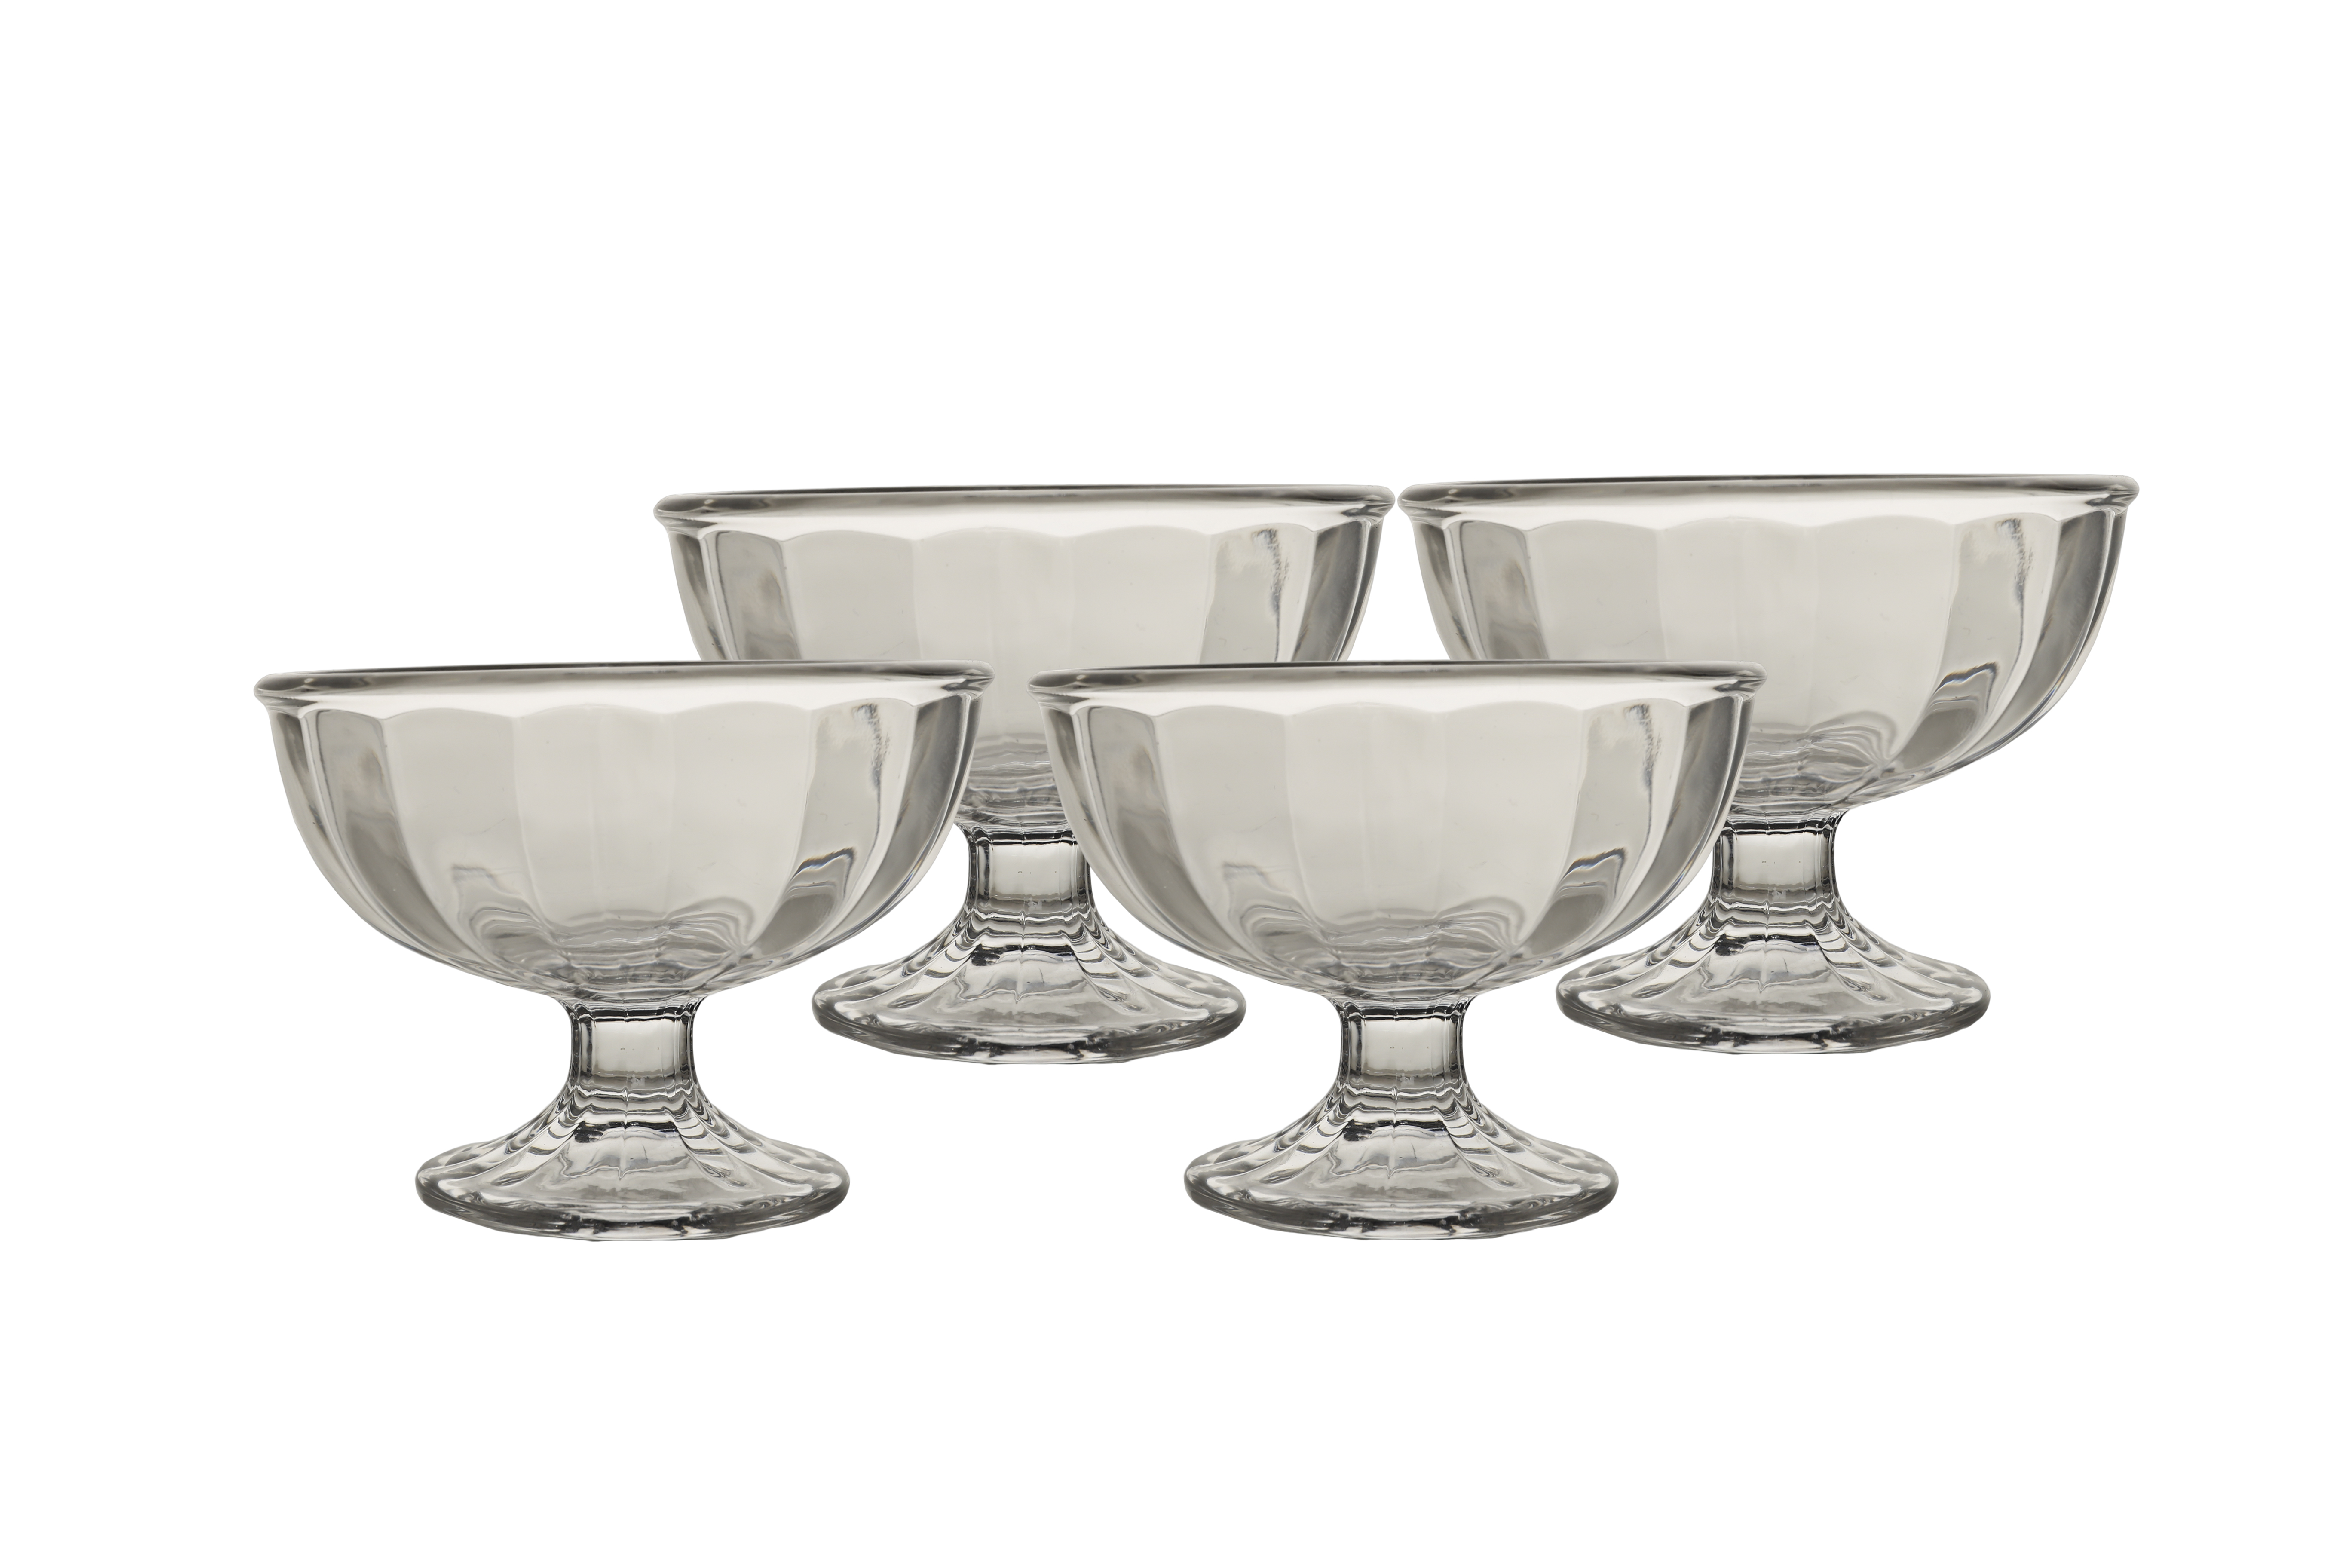 Crescent Bliss Icecream Bowls Set Of Four Glass Dessert Sets in Transparent Colour by HomeTown